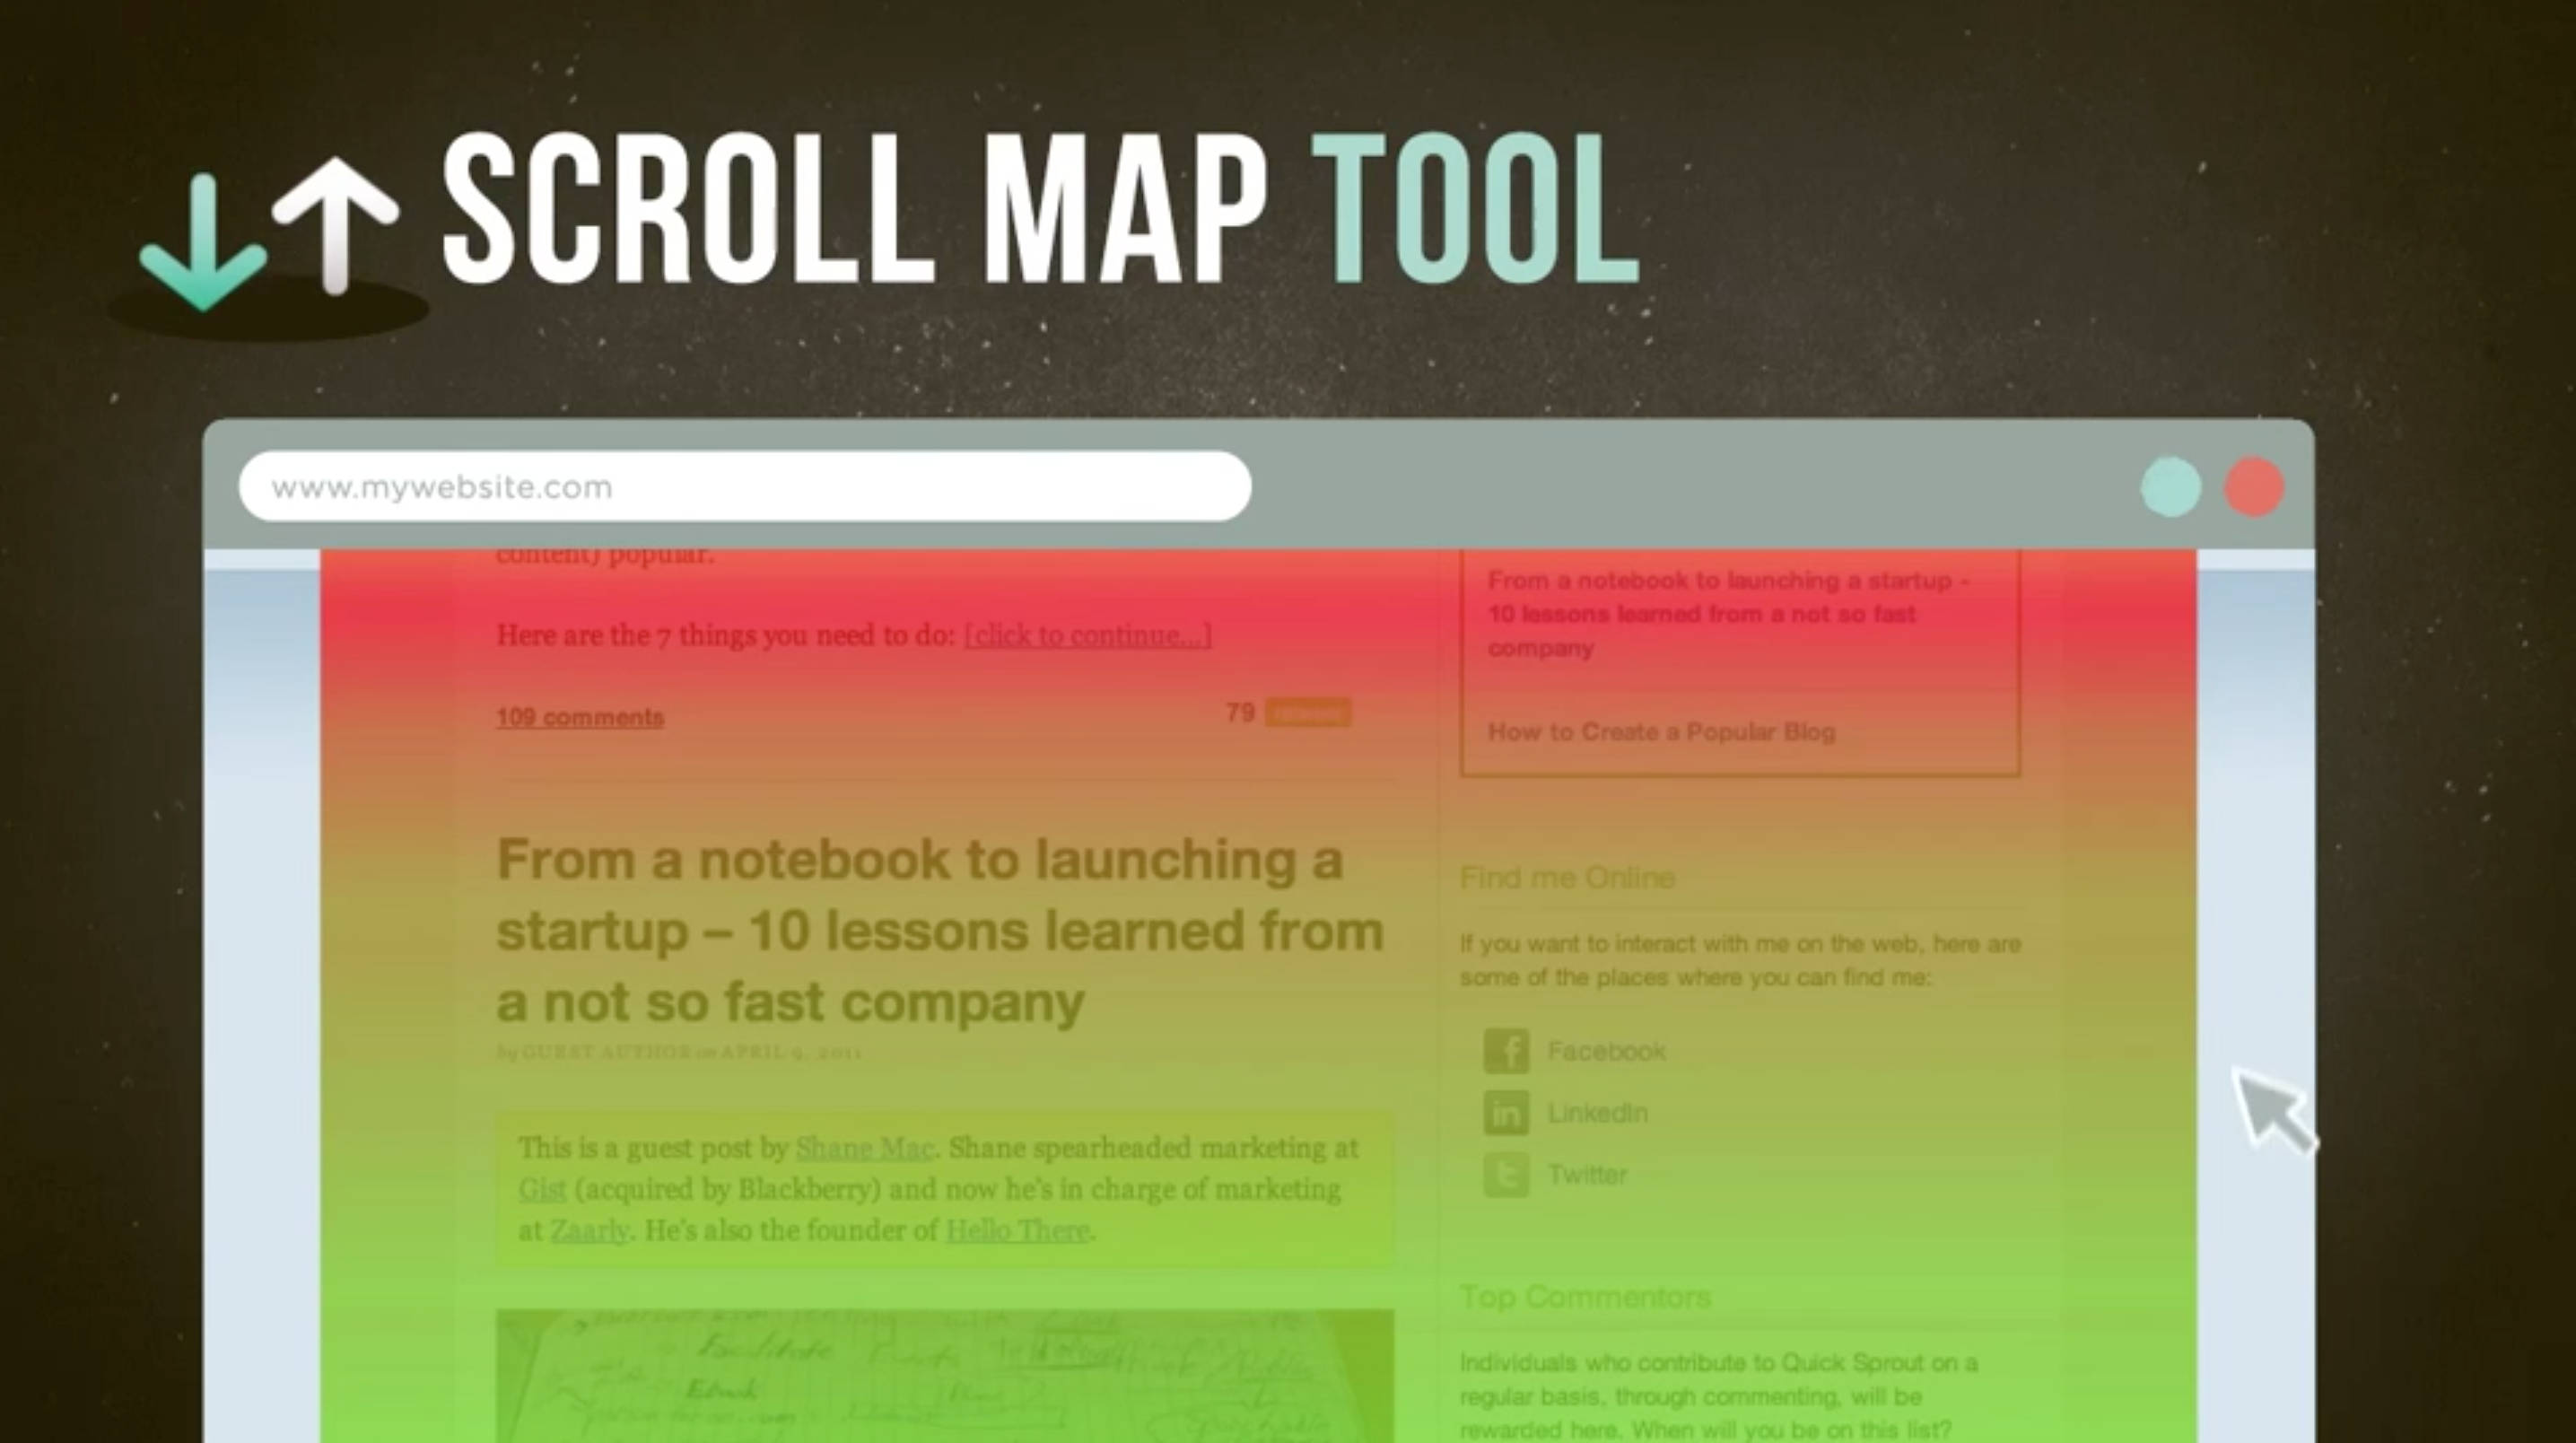 Scroll Mapping Tool in Twin Falls, Idaho.